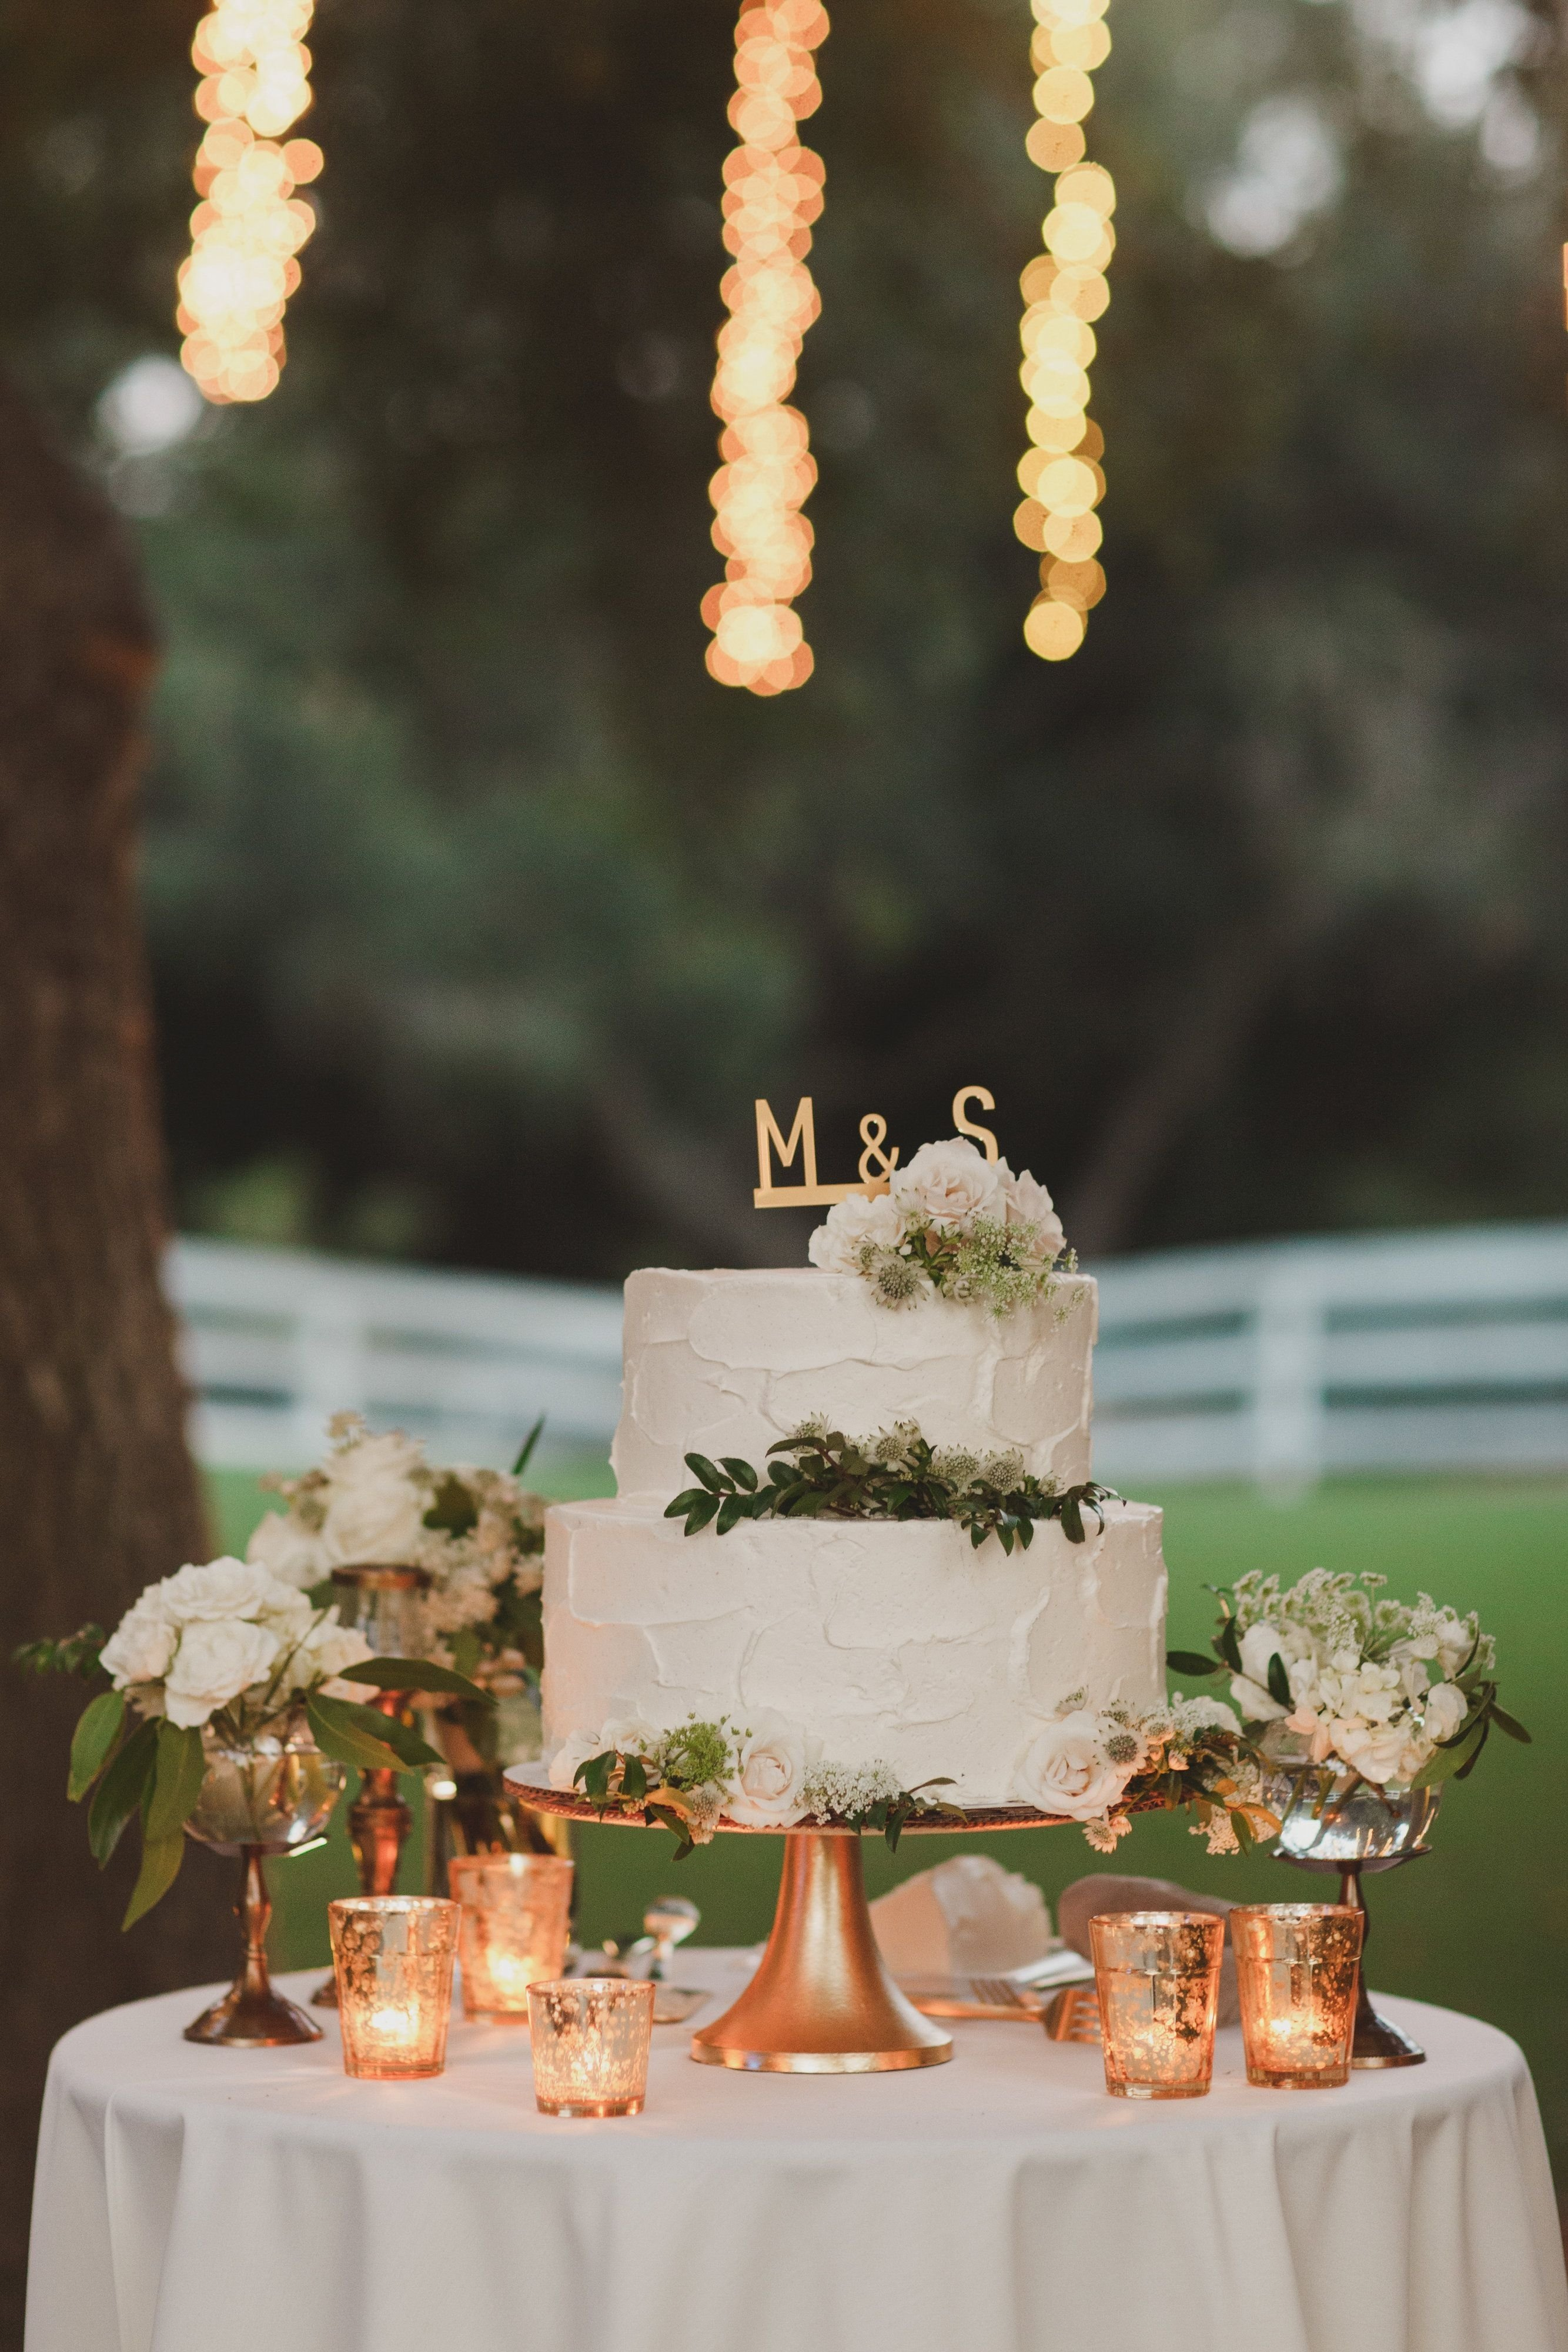 simply tasteful wedding | white wedding cakes, wedding cake and cake